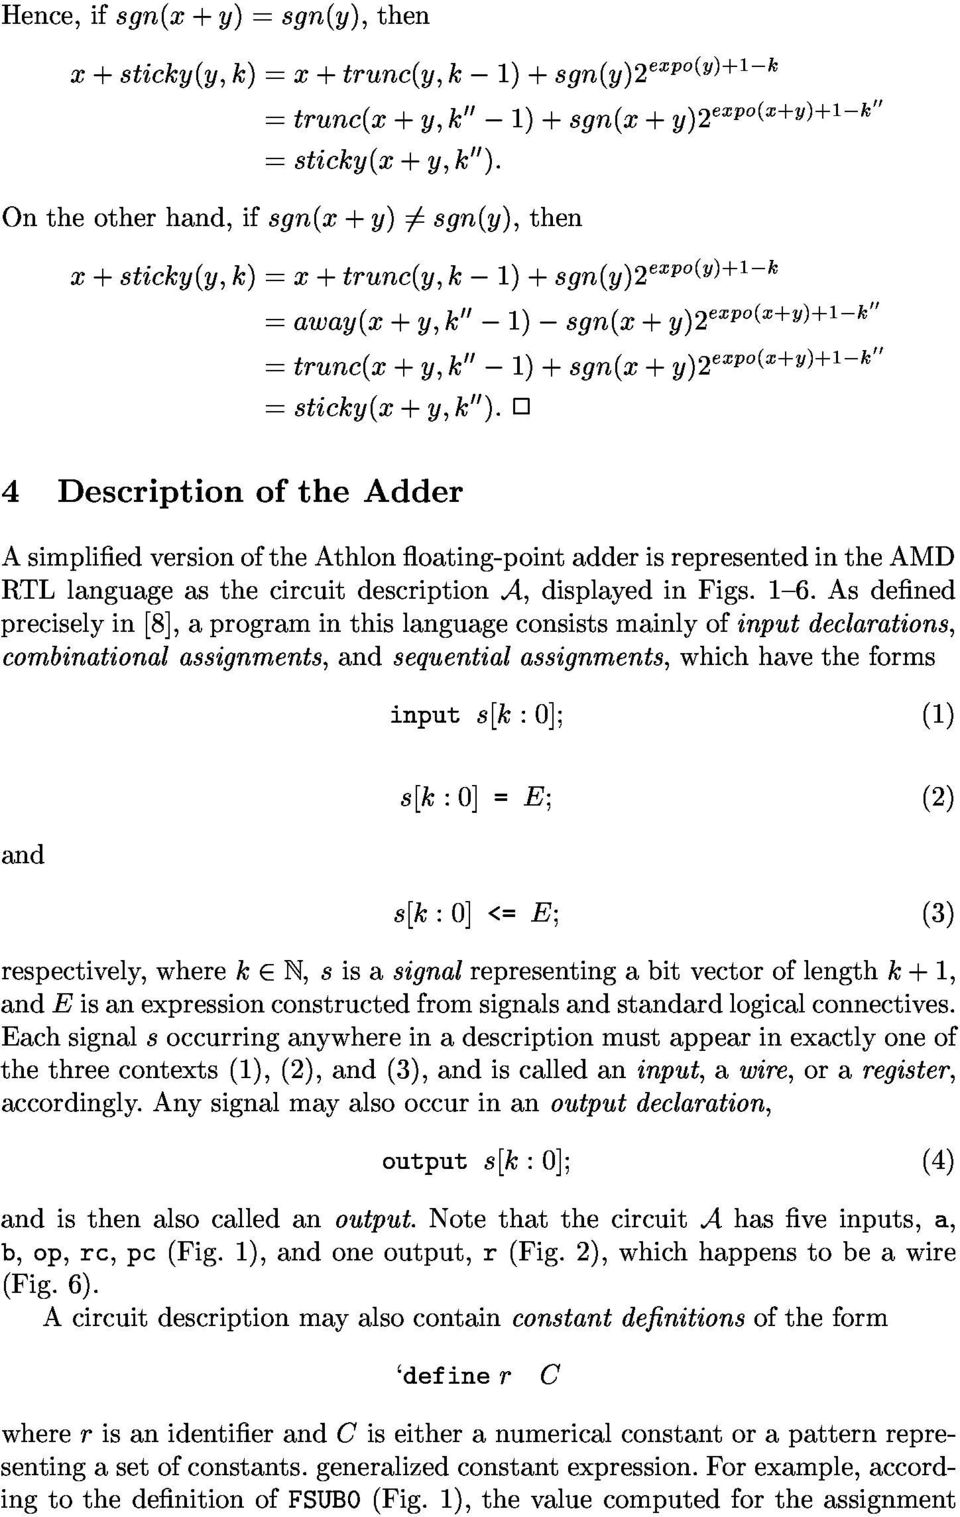 k00 4DescriptionoftheAdder =sticky(x+y;k00):2 preciselyin[8],aprograminthislanguageconsistsmainlyofinputdeclarations, combinationalassignments,andsequentialassignments,whichhavetheforms